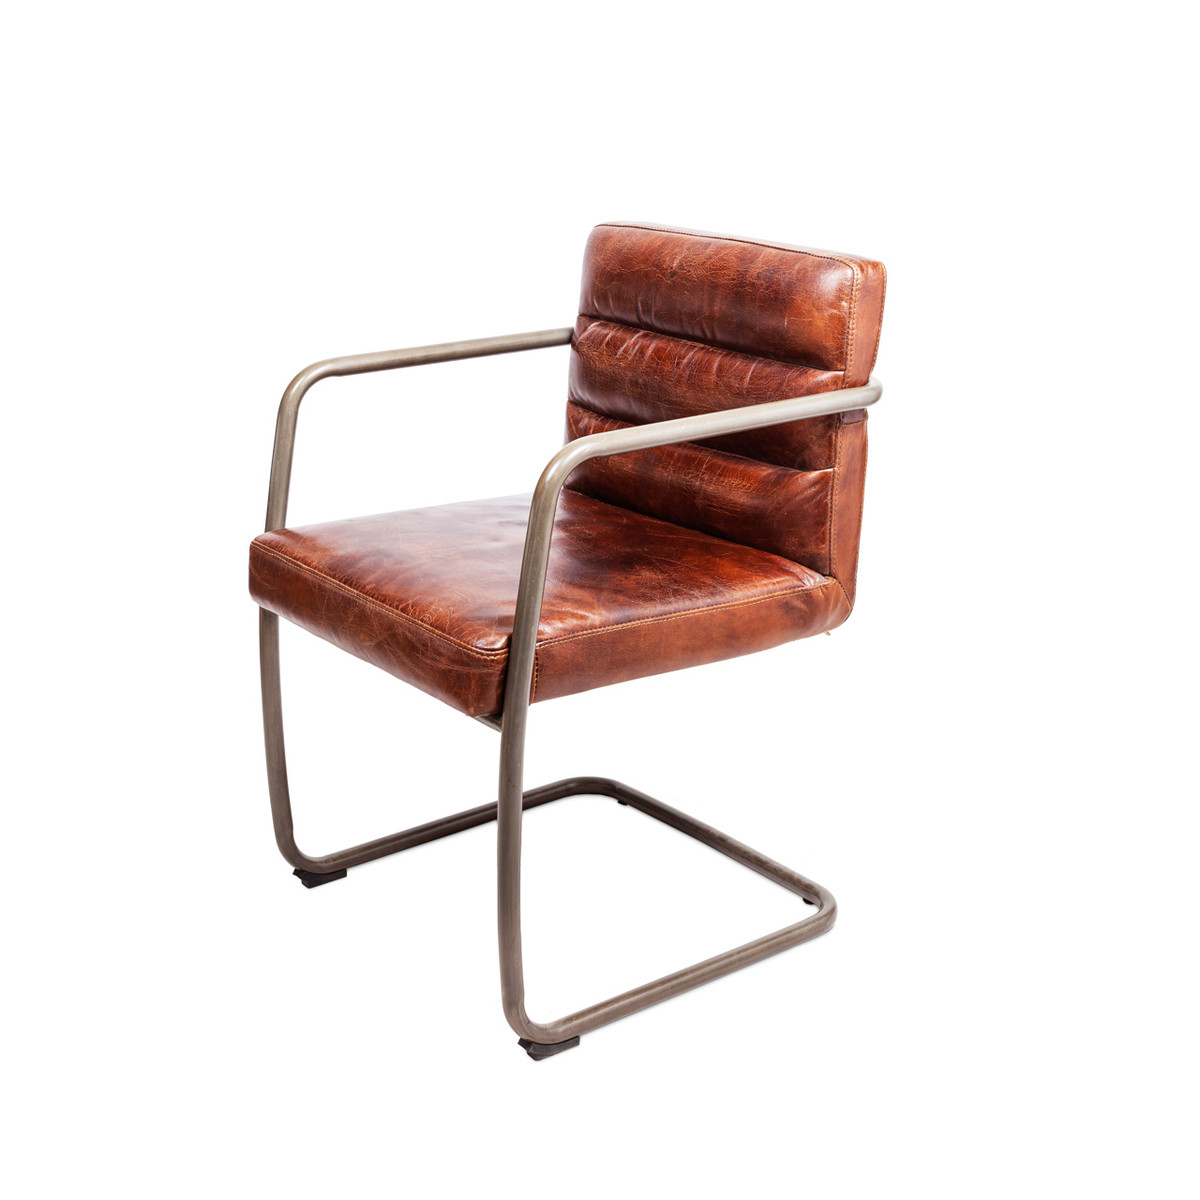 Buy Office Chairs Online Aged Leather B52 Chair Buy Vintage Office Chairs Online